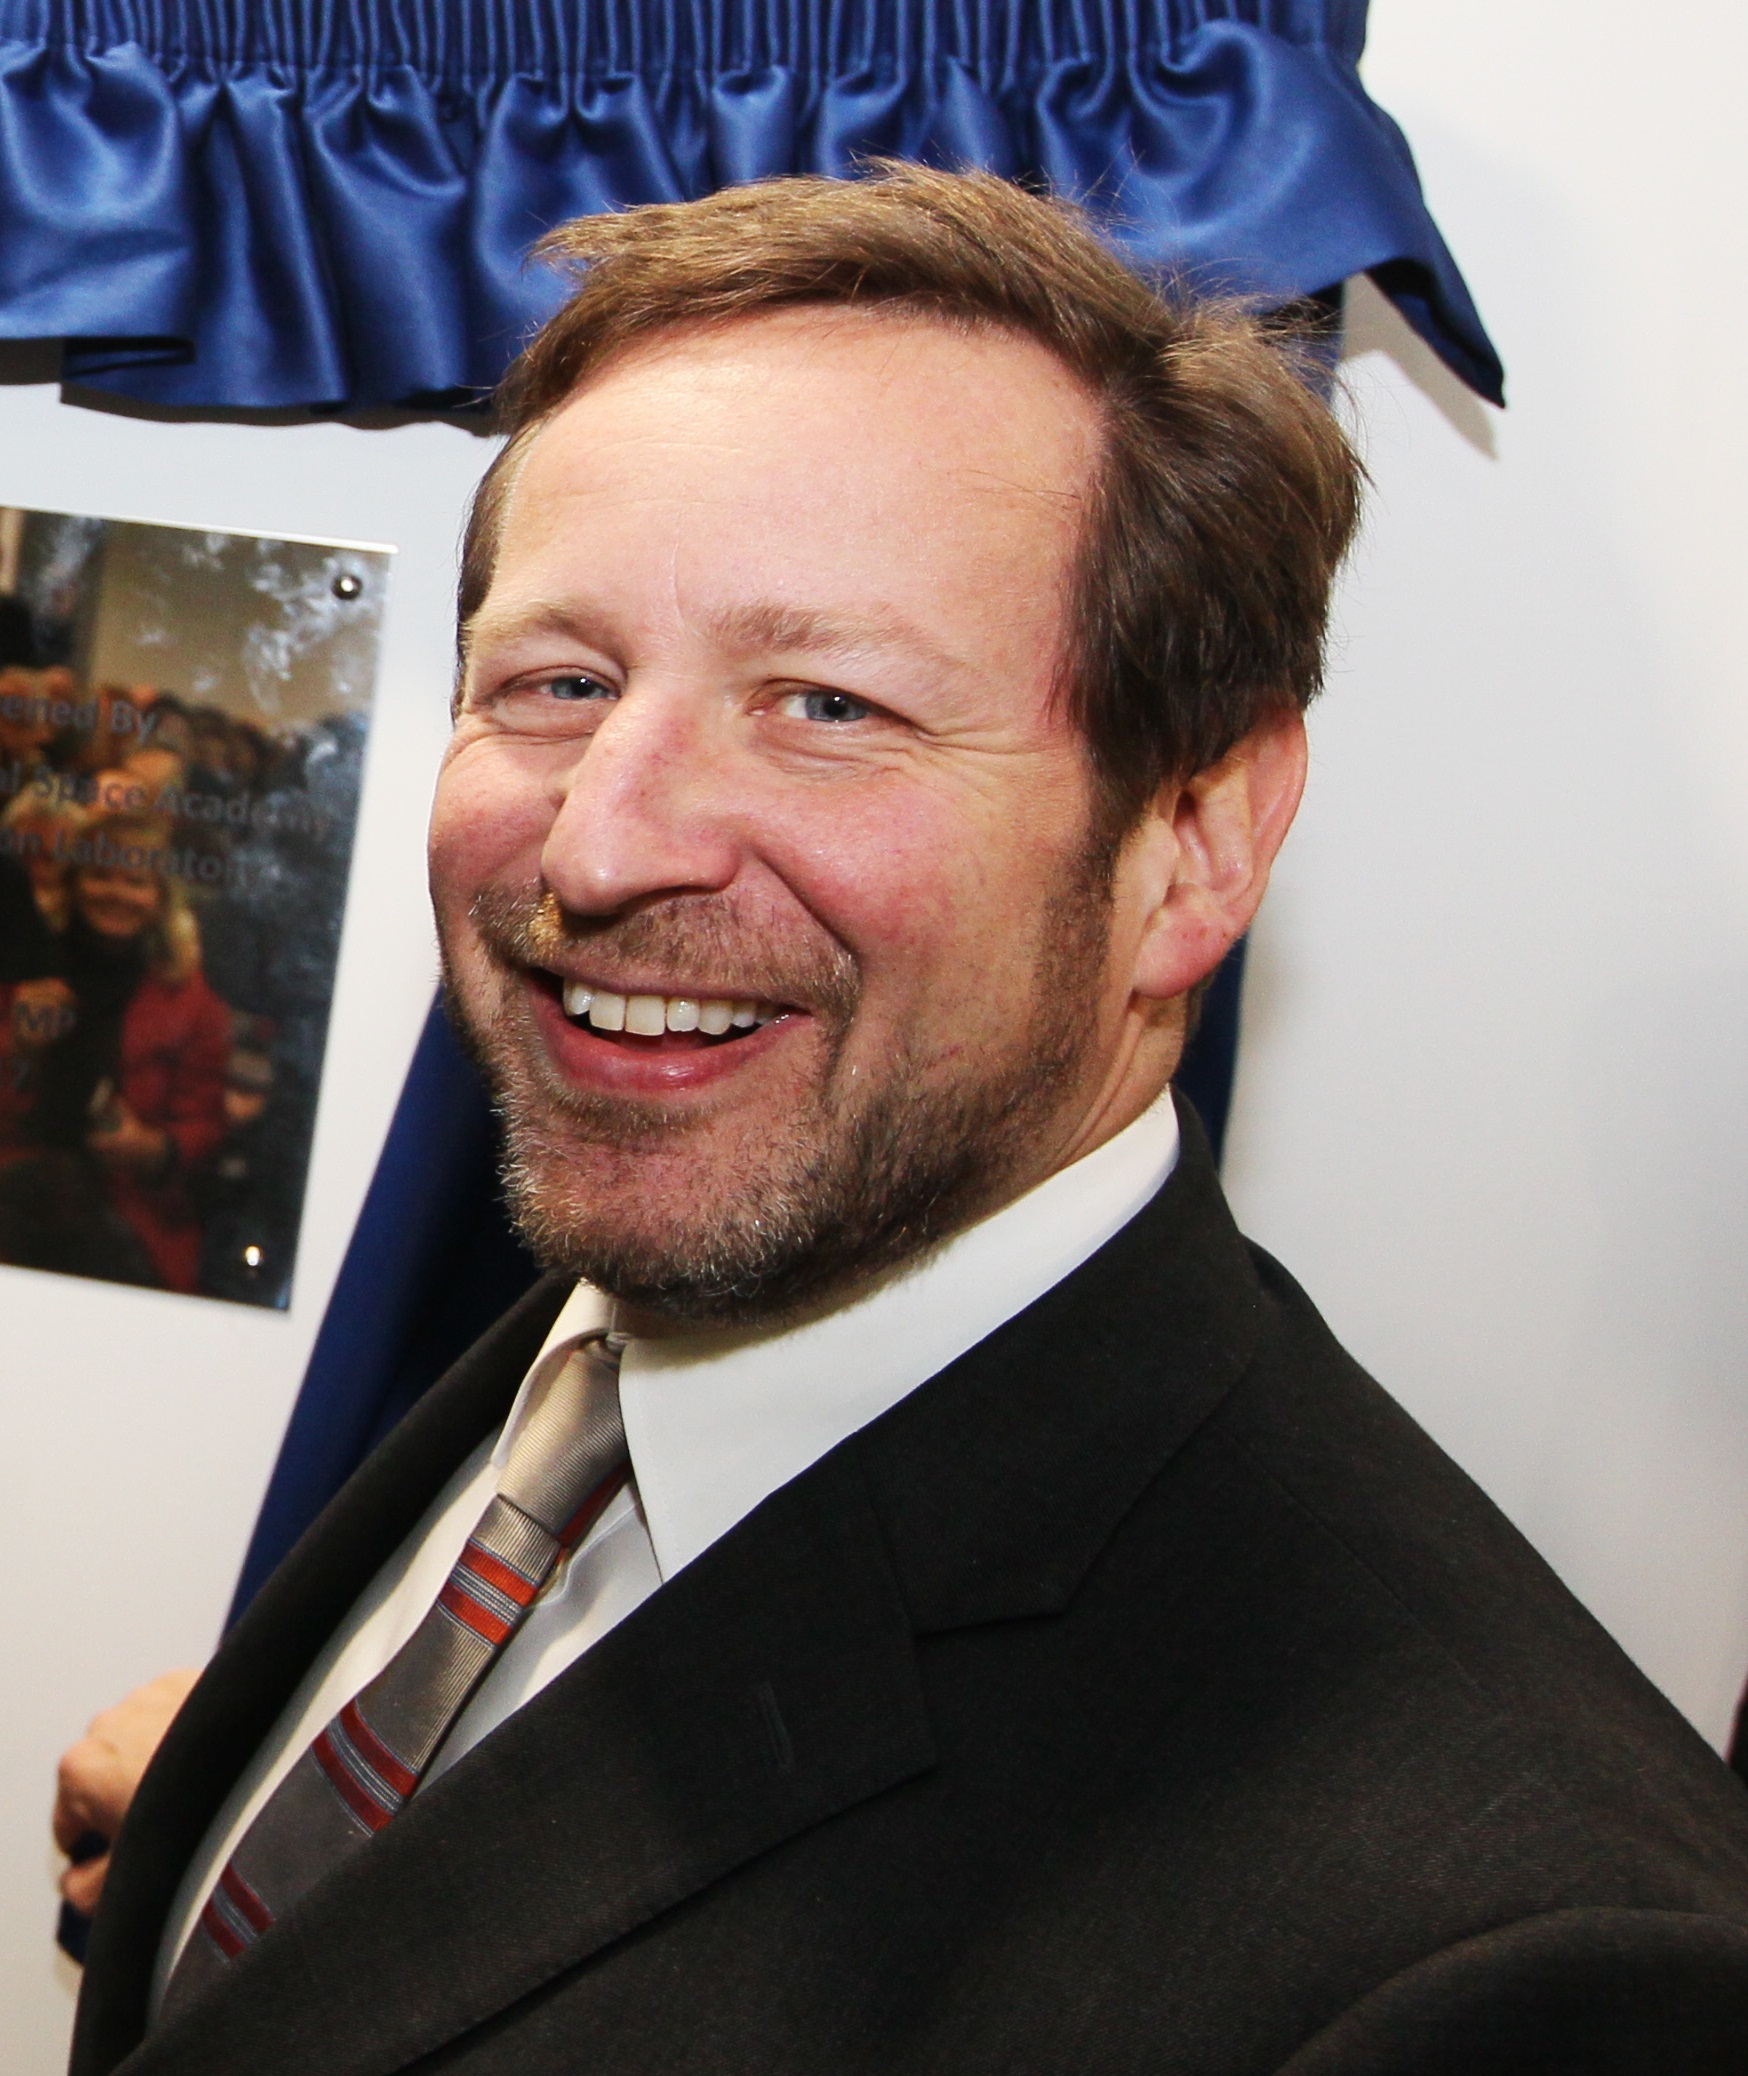 Wantage MP Ed Vaizey. Picture: Ed Nix.